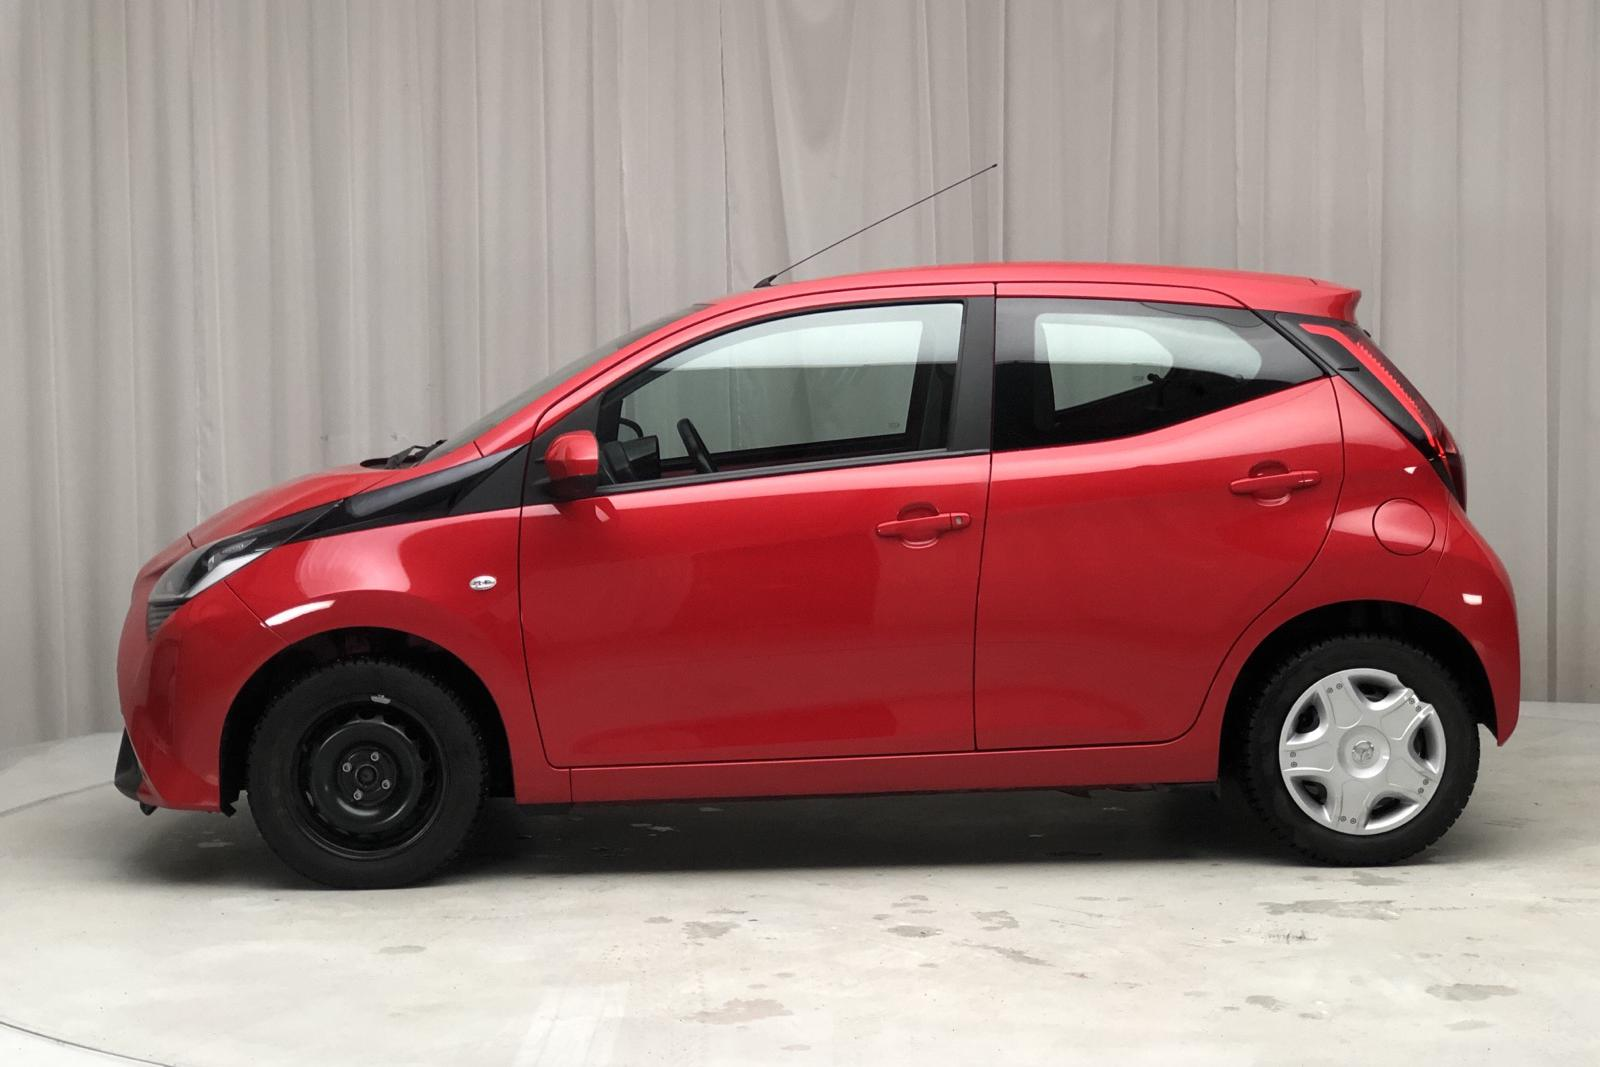 Toyota Aygo 1.0 5dr (72hk) - 60 170 km - Manual - red - 2019